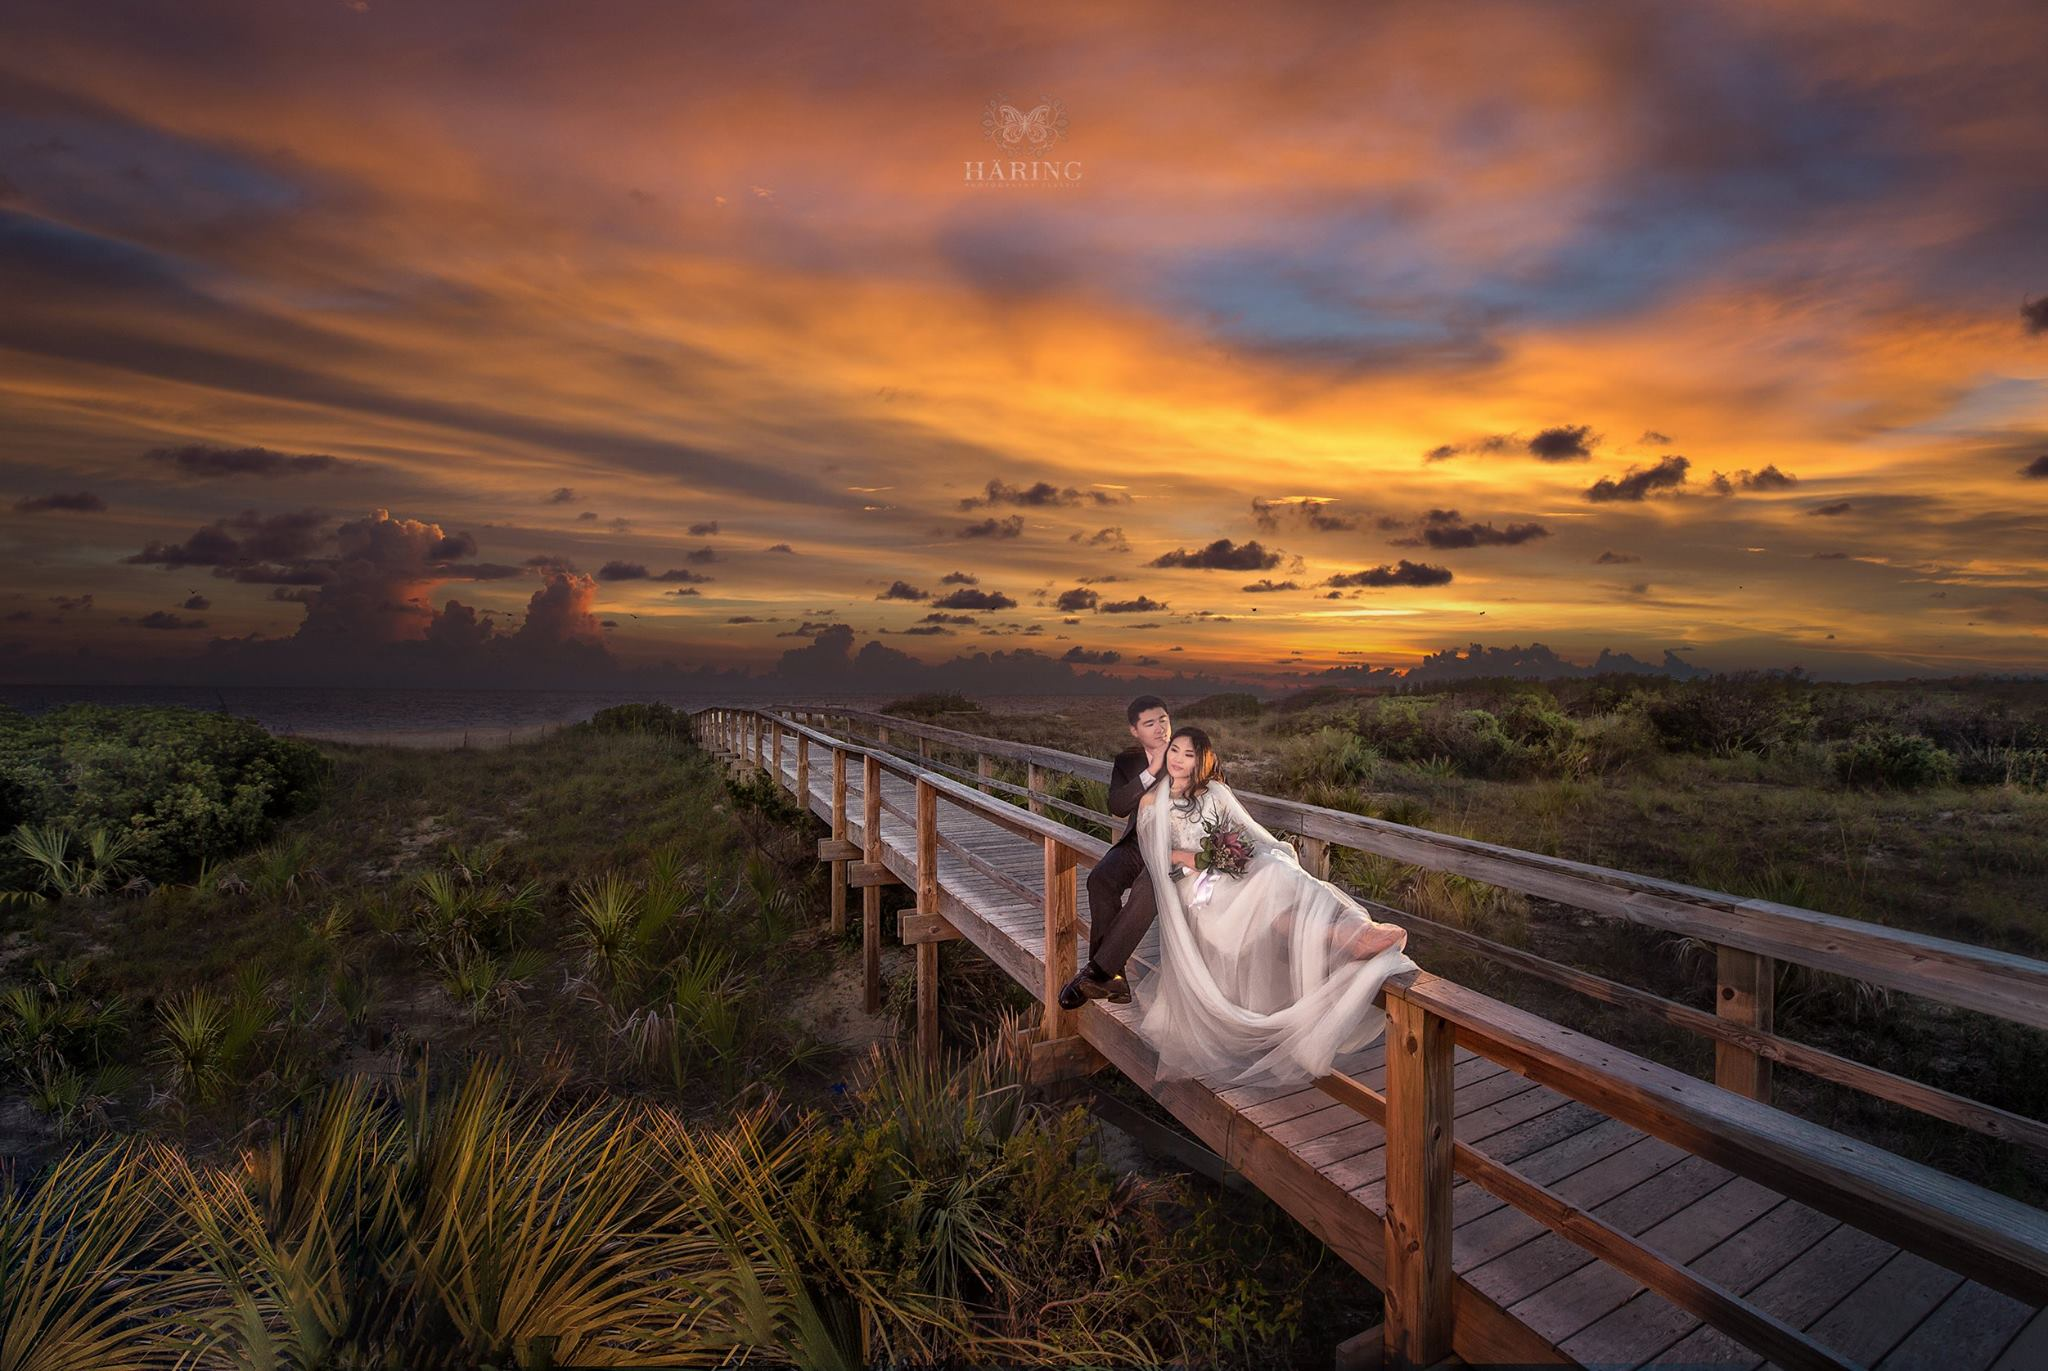 Sunset on the Beach, Miami Wedding Photographers | Häring Photography, Indian Wedding Photographer in Florida, Best Muslim, Hindu - South East Asian Wedding Photographers